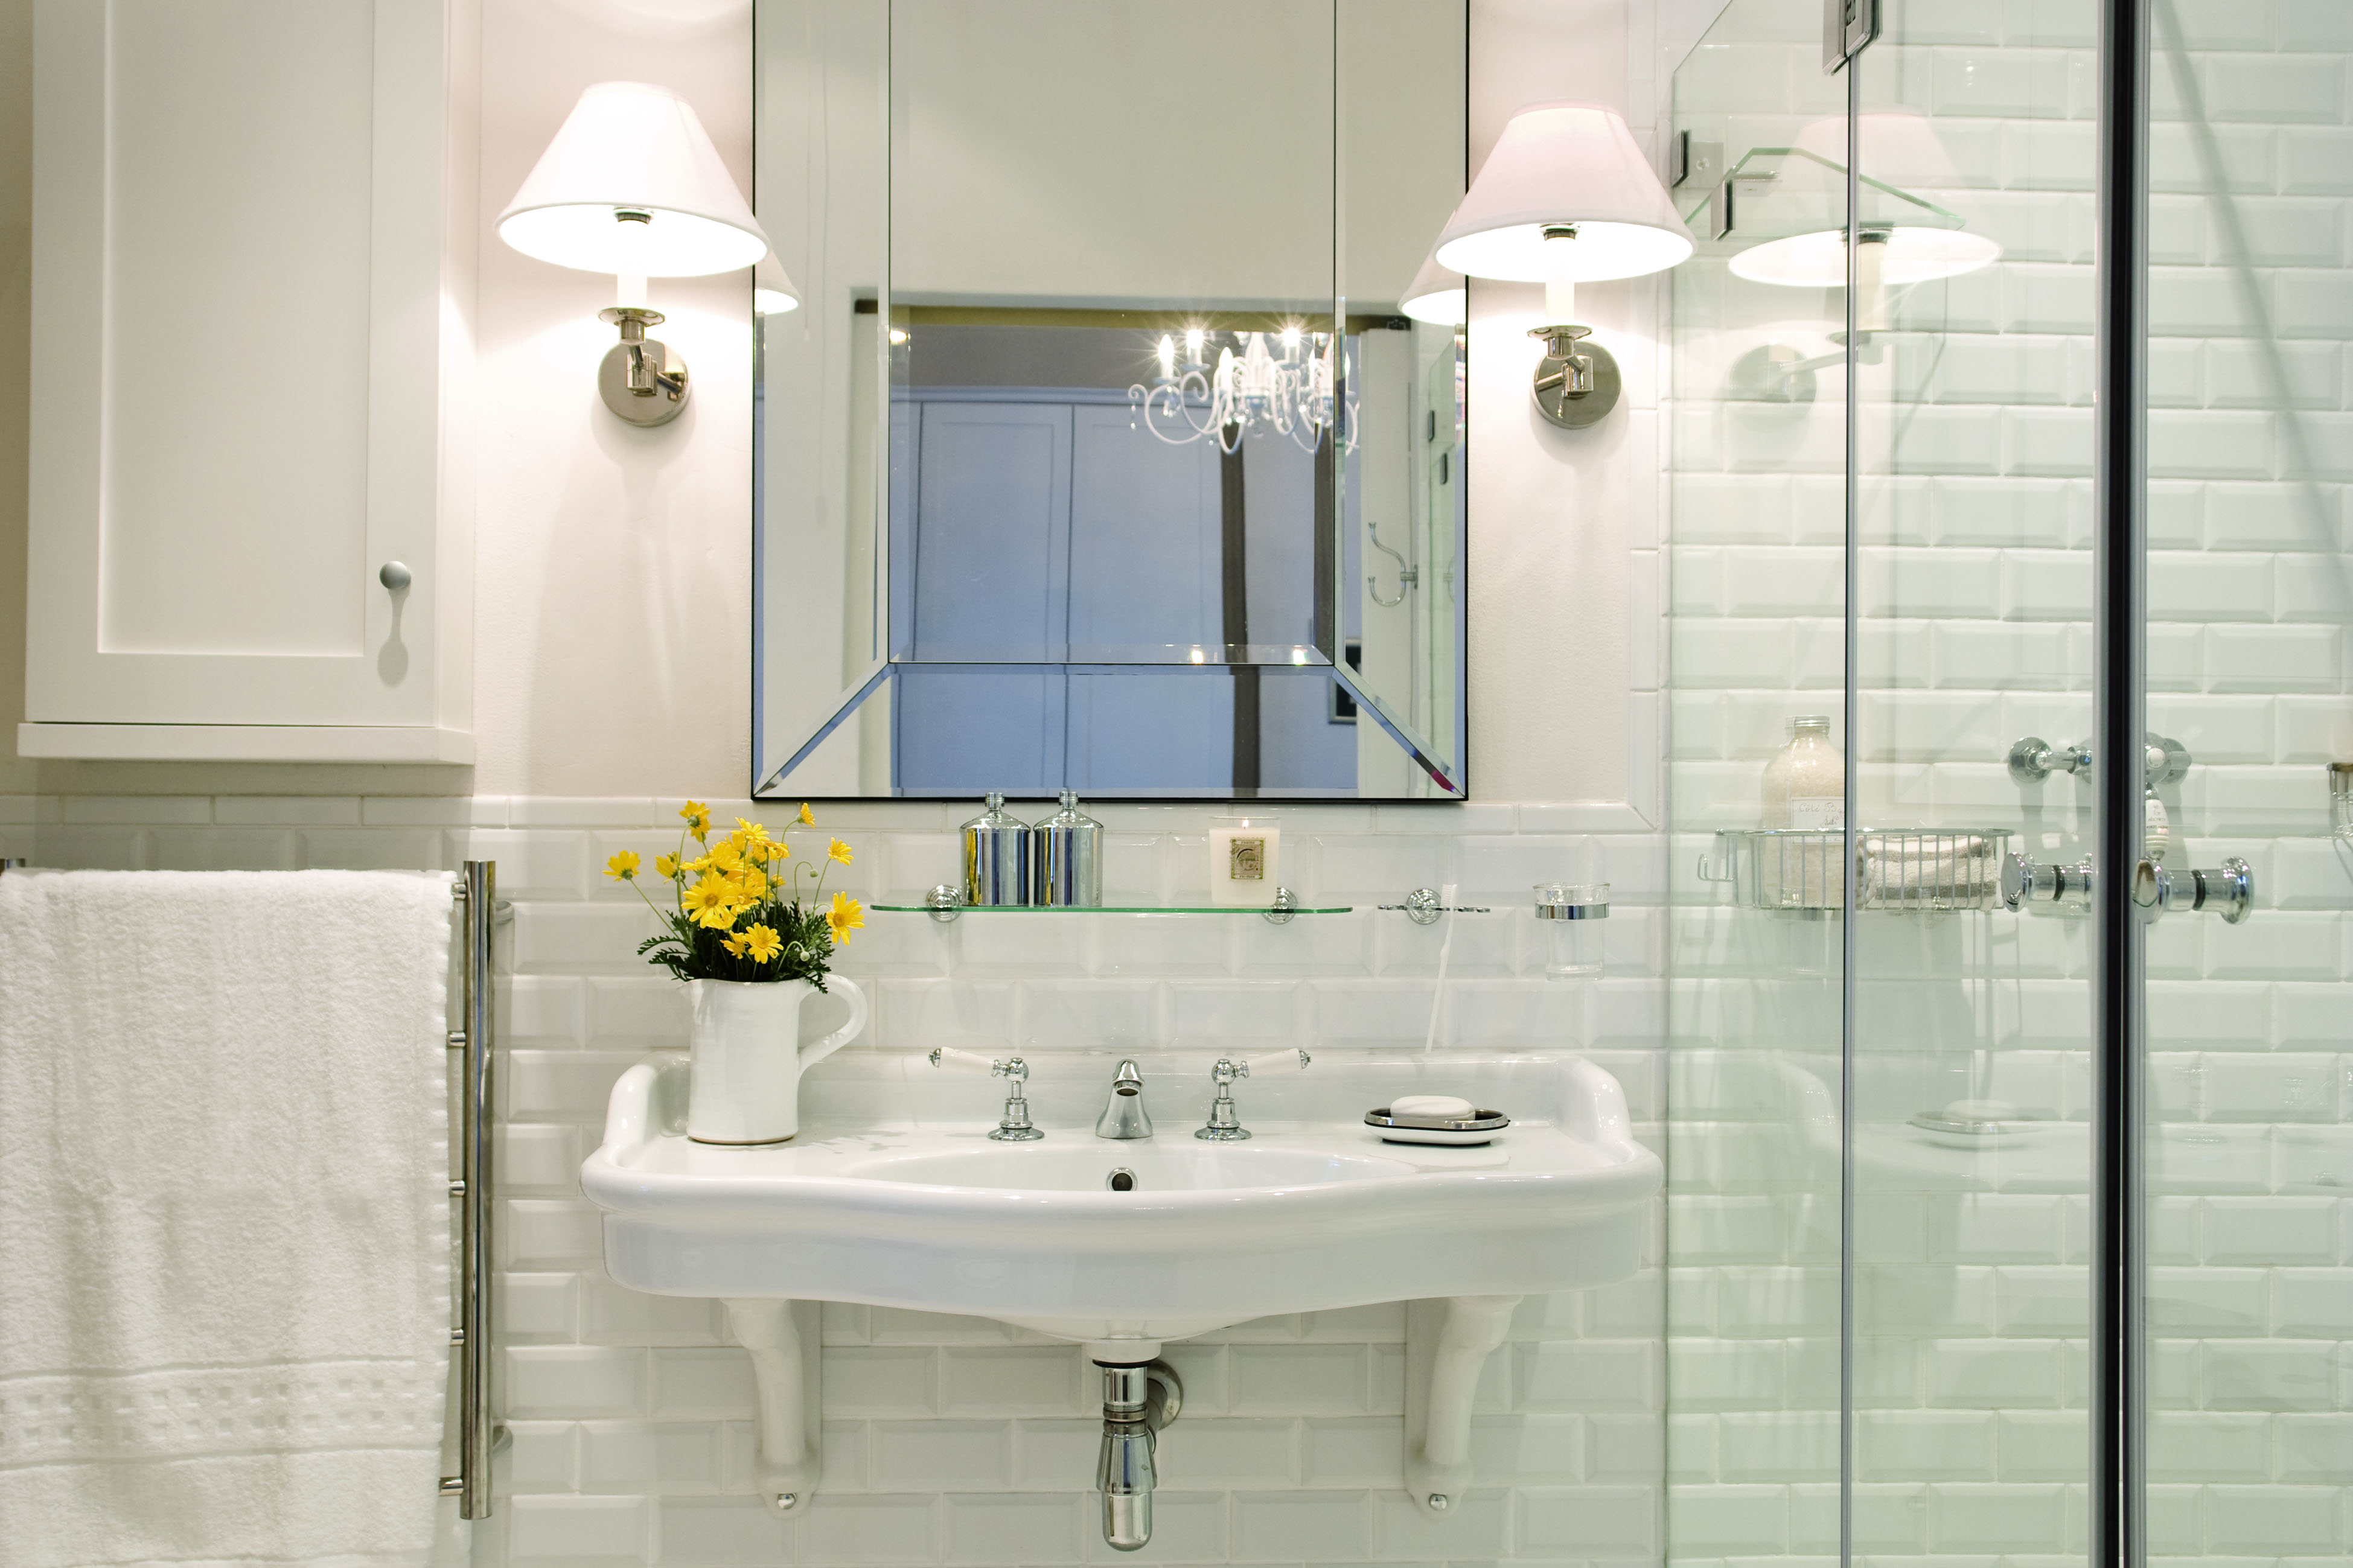 How to create a timeless bathroom Bathroom design and fitting wandsworth